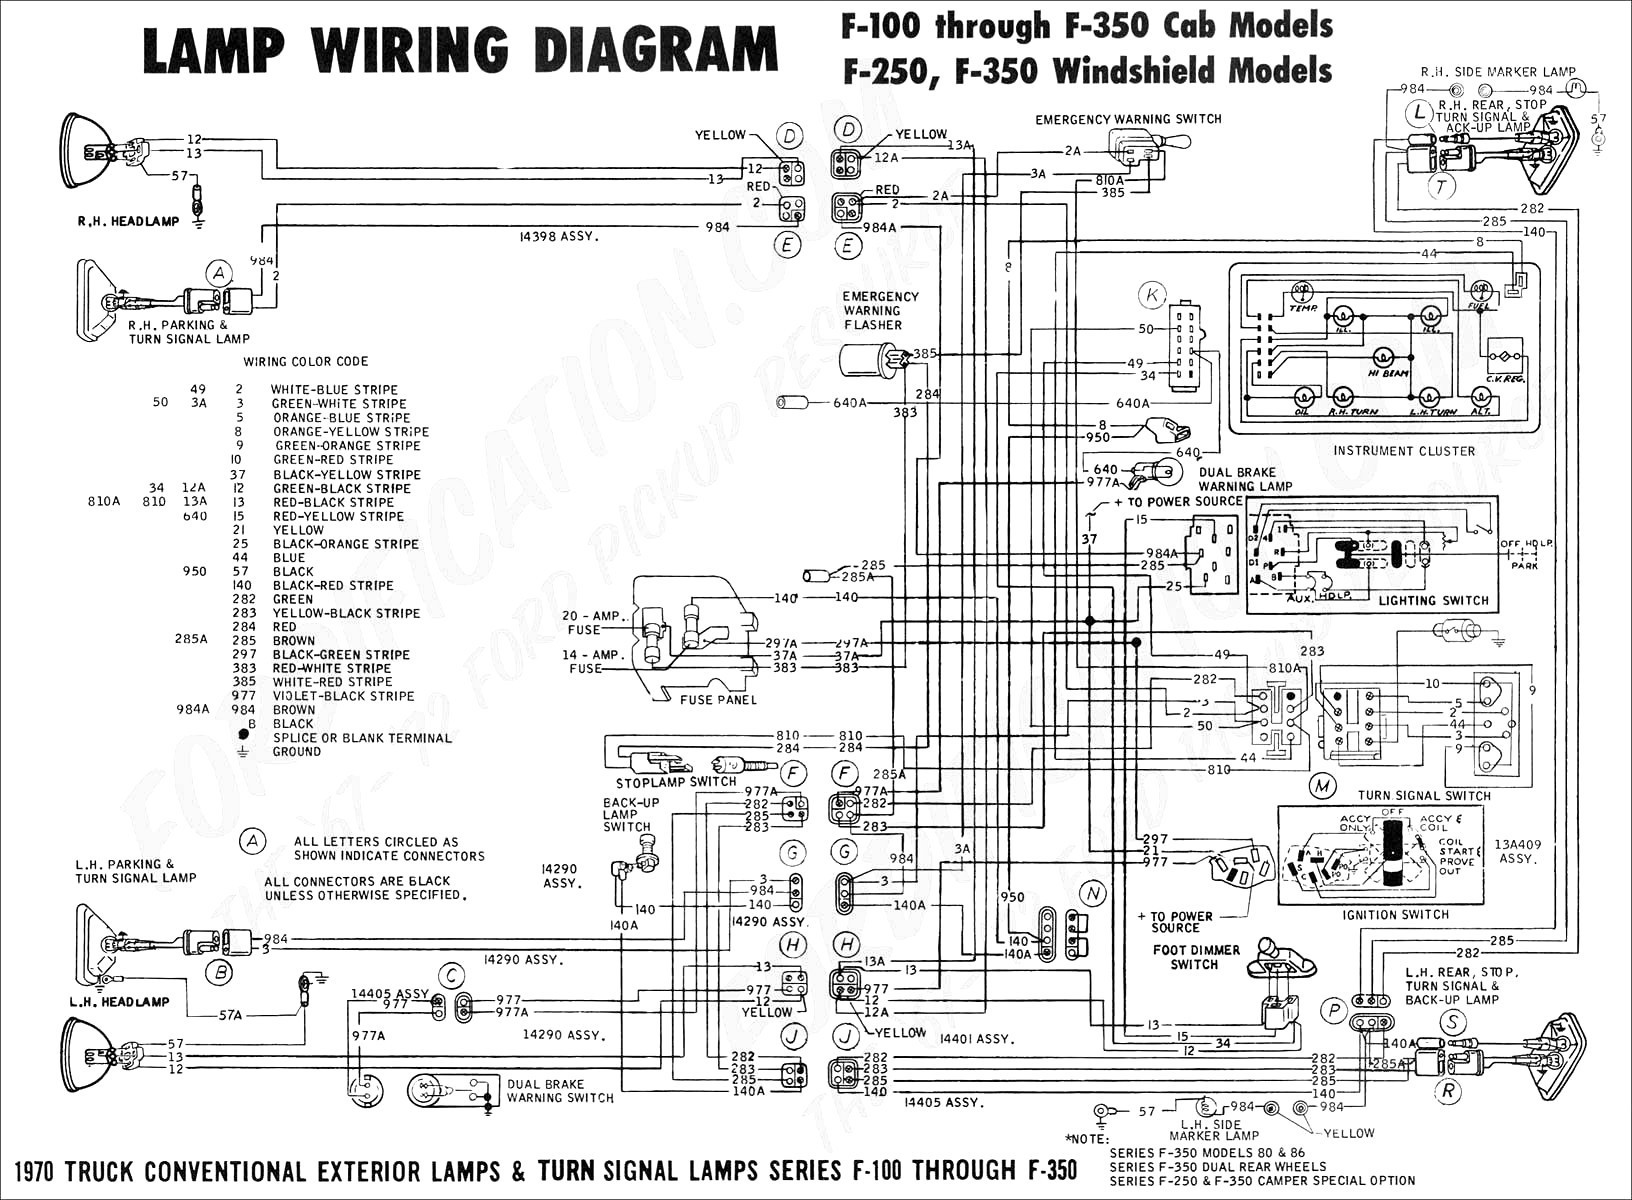 2002 ford Taurus Wiring Diagram 2001 ford Taurus Stereo Wiring Diagram Simple 2001 ford Mustang Of 2002 ford Taurus Wiring Diagram